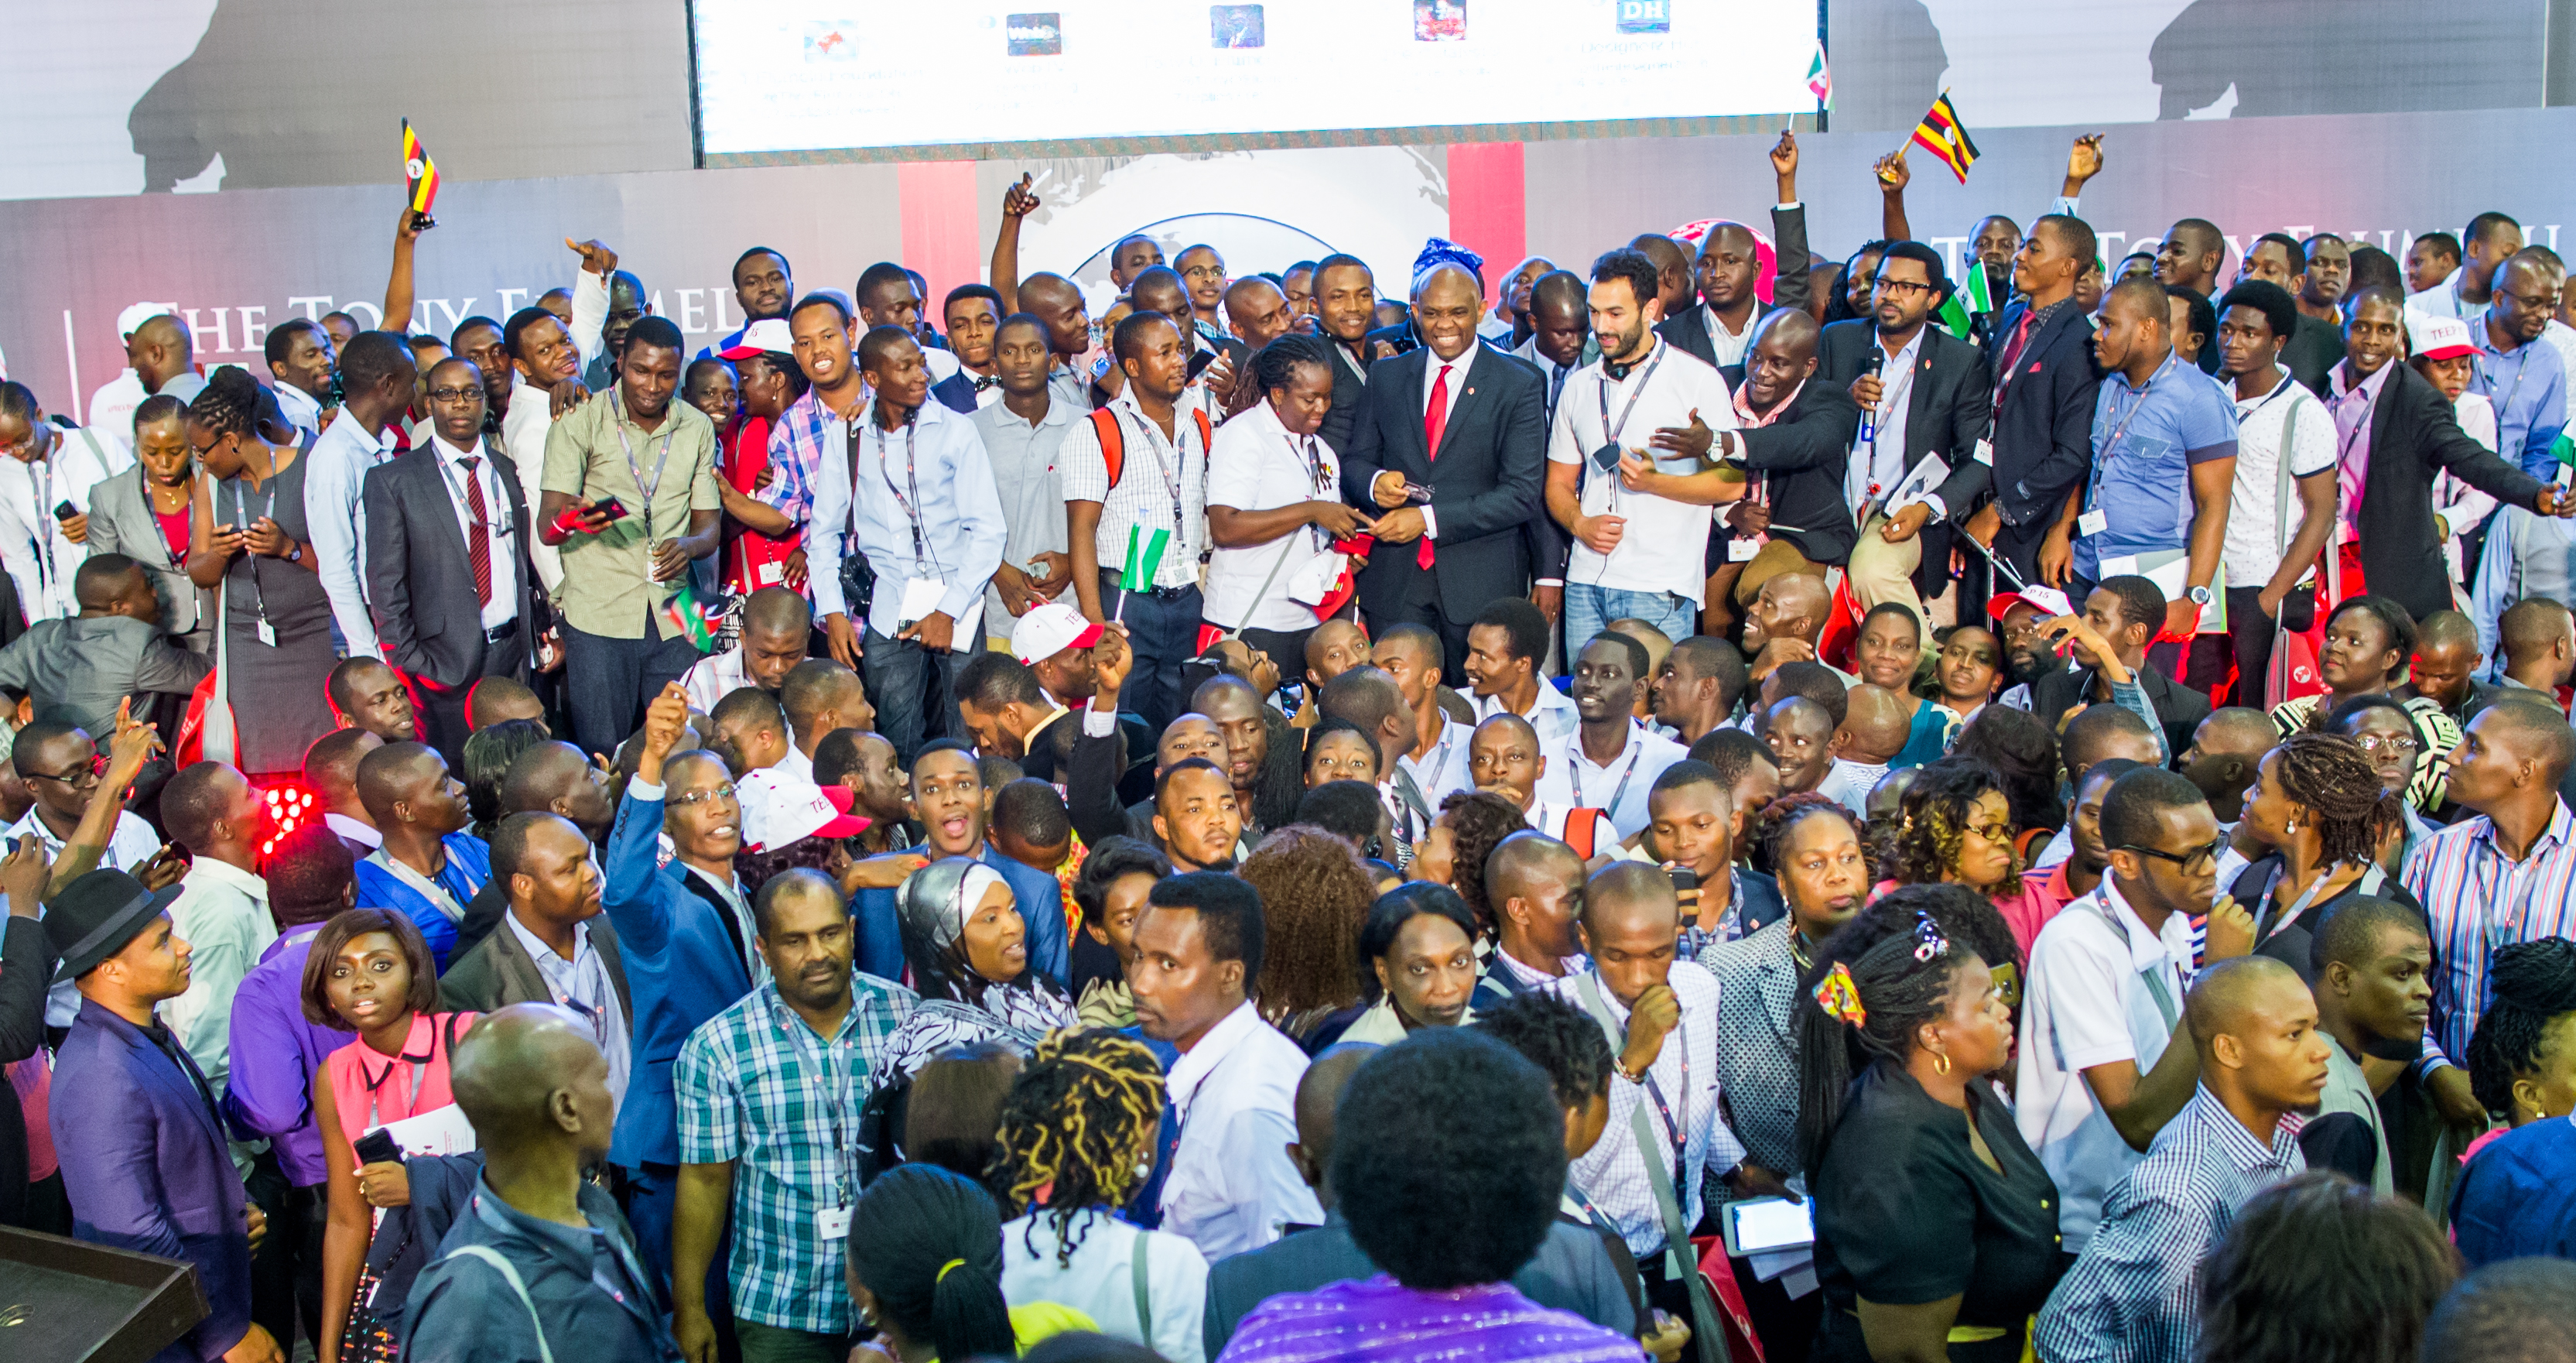 Tony O. Elumelu with the 1,000 entrepreneurs representing 51 African countries from the 2015 class of the $100 million Tony Elumelu Entrepreneurship Programme during the entrepreneurship boot camp in Ota, Nigeria in July.